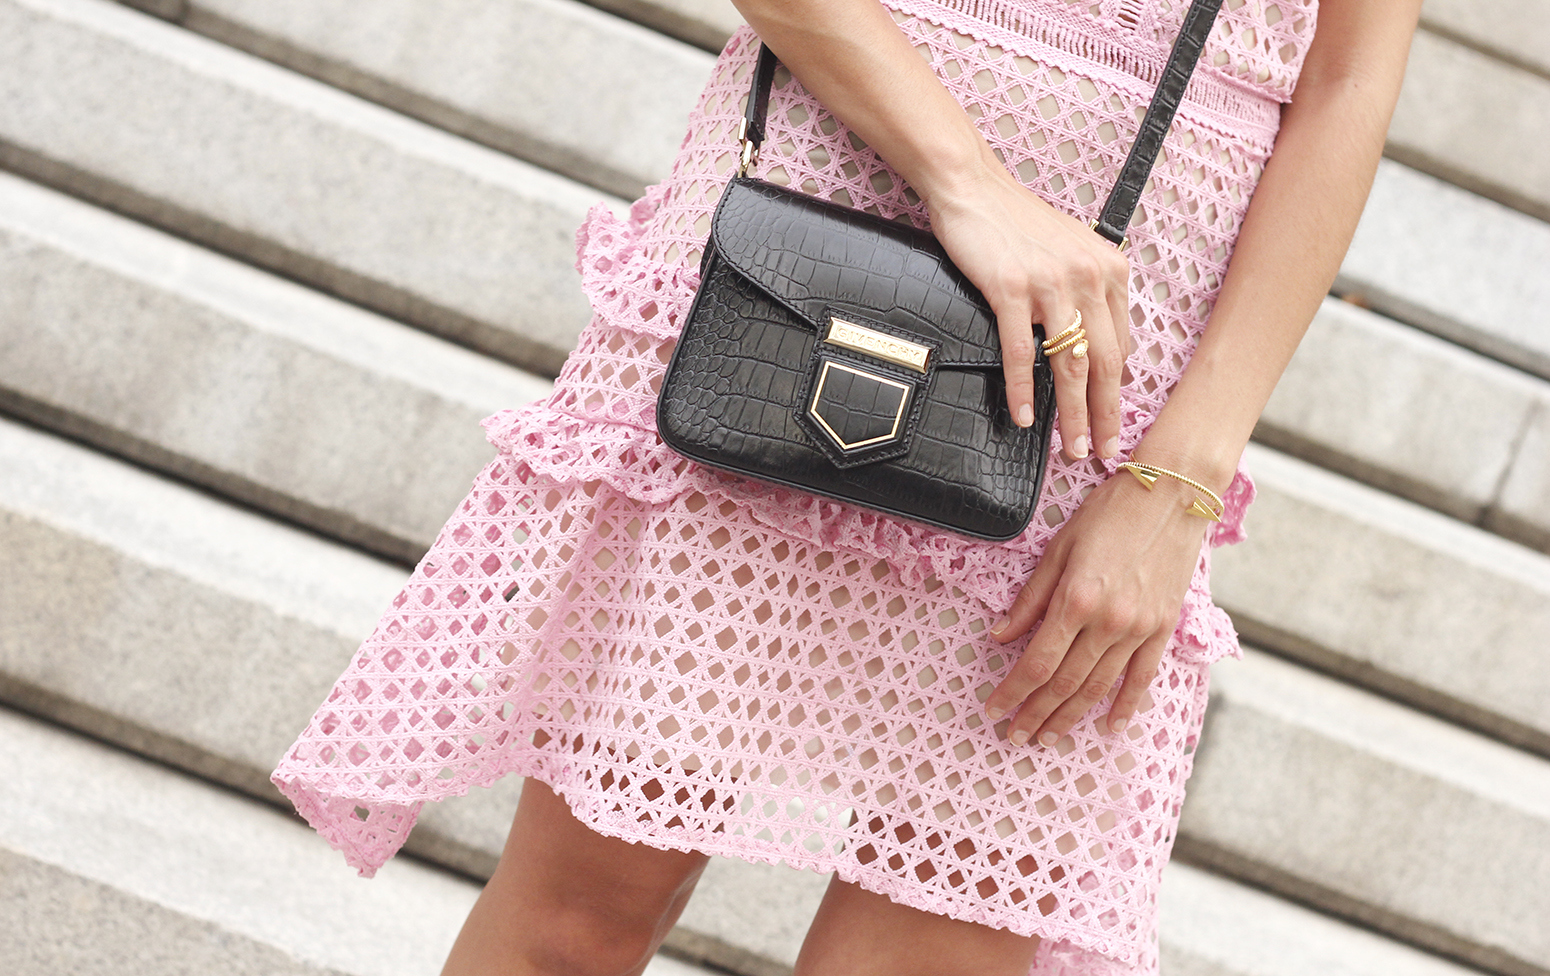 Pink dress summer givenchy bag nude heels outfit girl style16